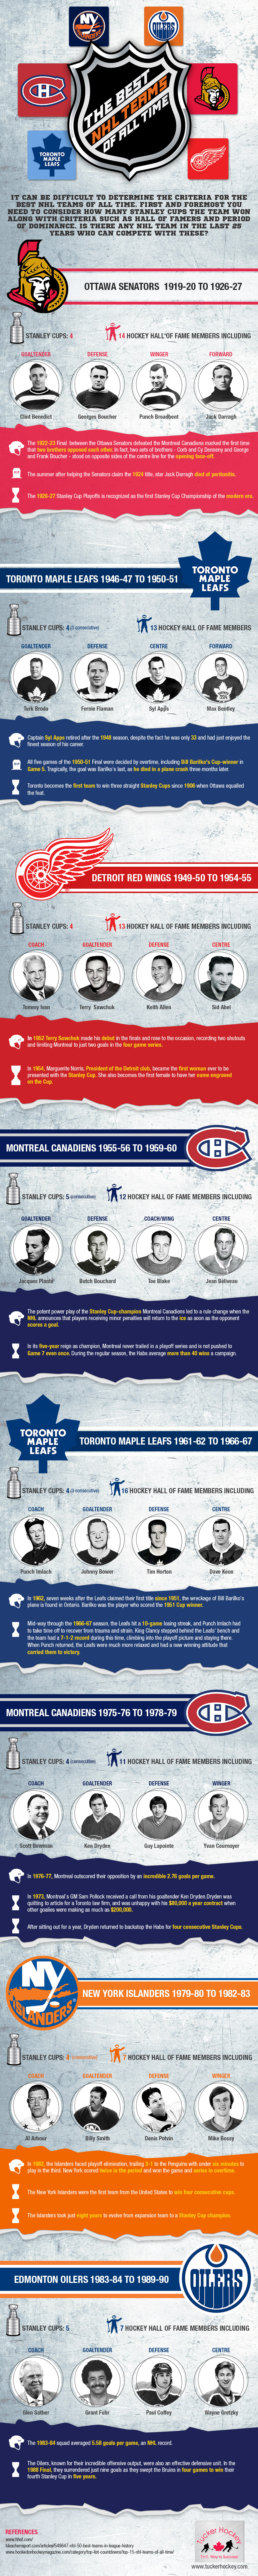 The Best NHL Teams of All Time